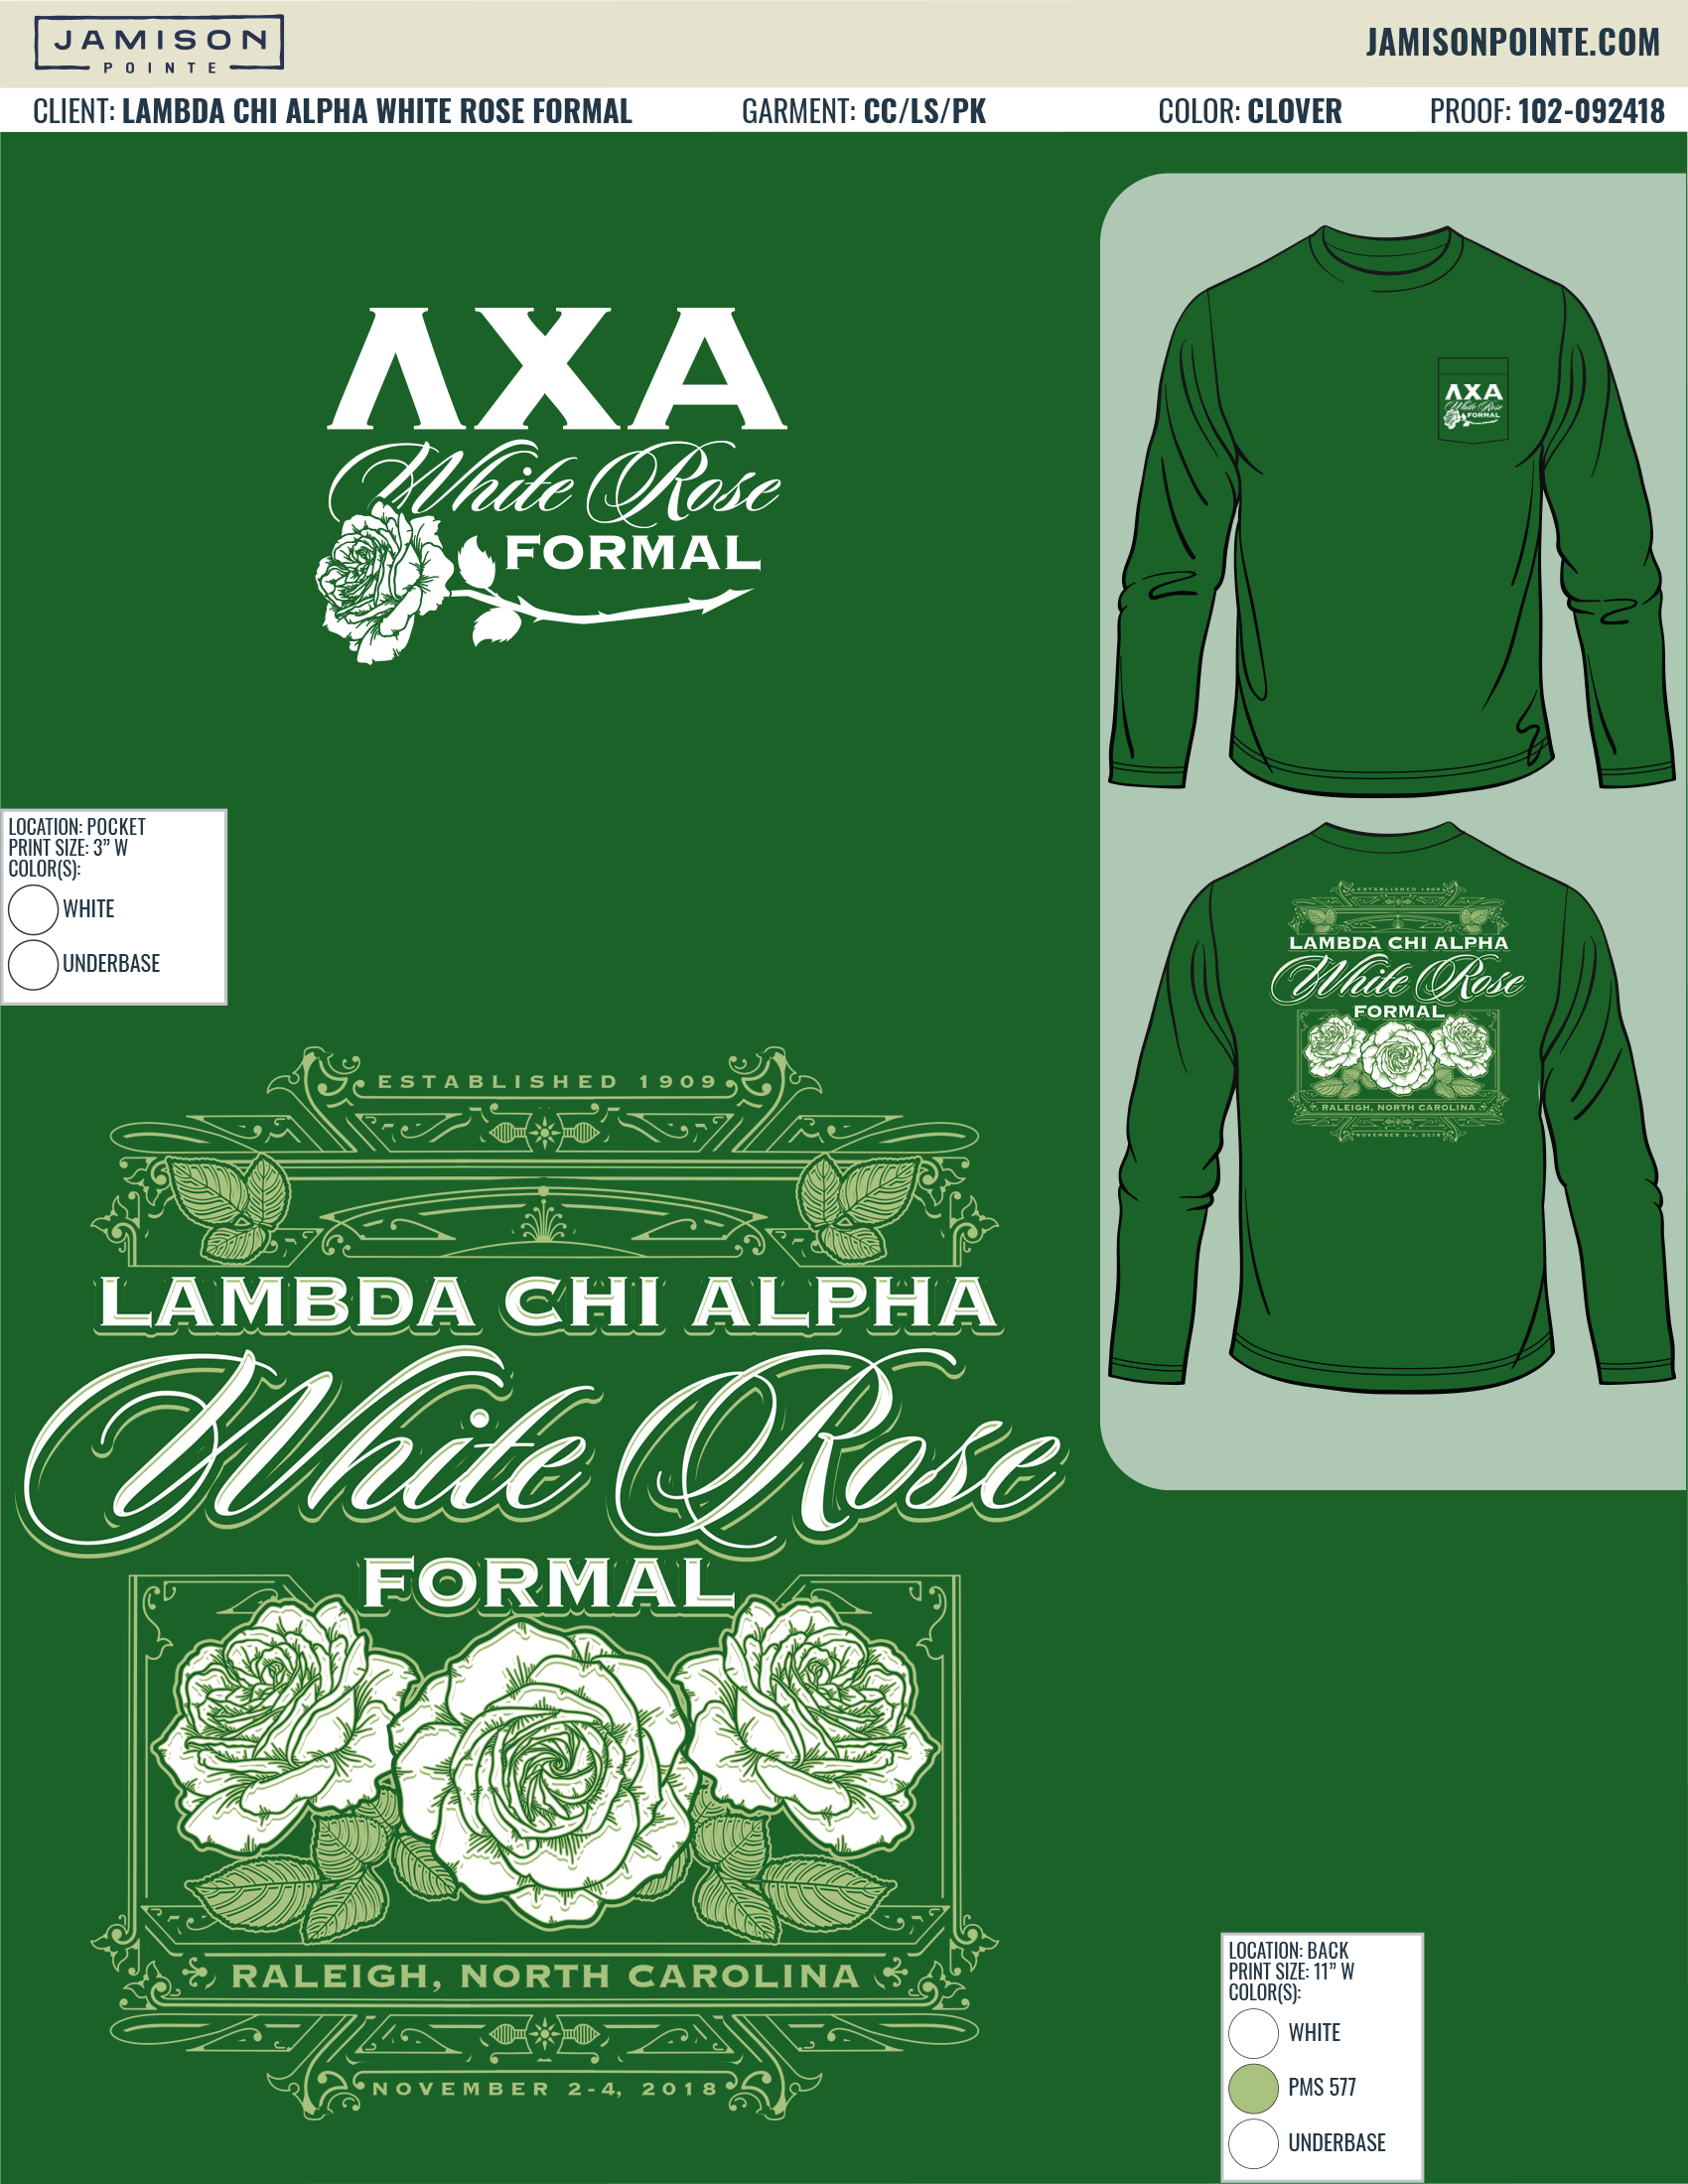 102-092418 Lambda Chi Alpha White Rose Formal.jpg